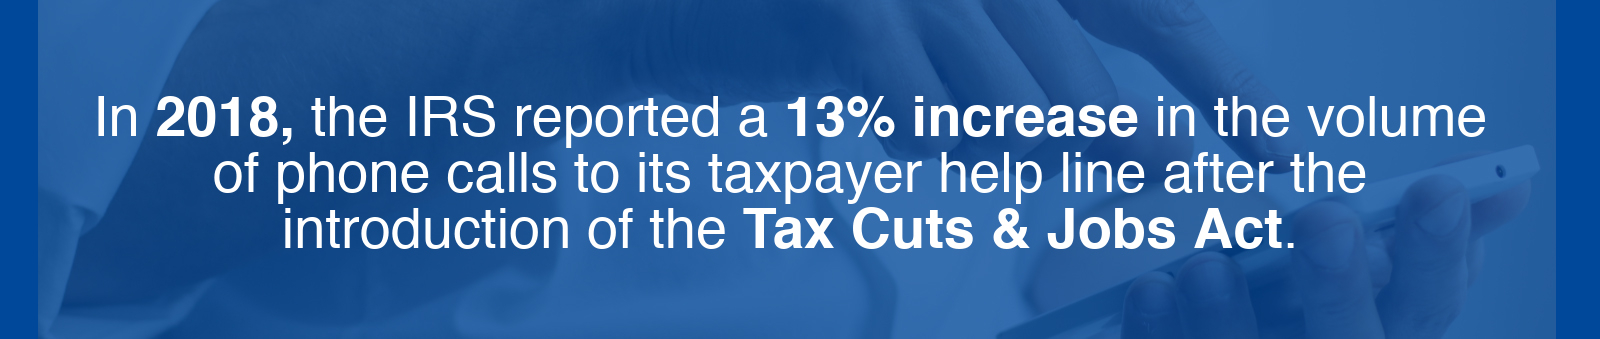 Tax-Cuts-And-Jobs-Act-Image-2